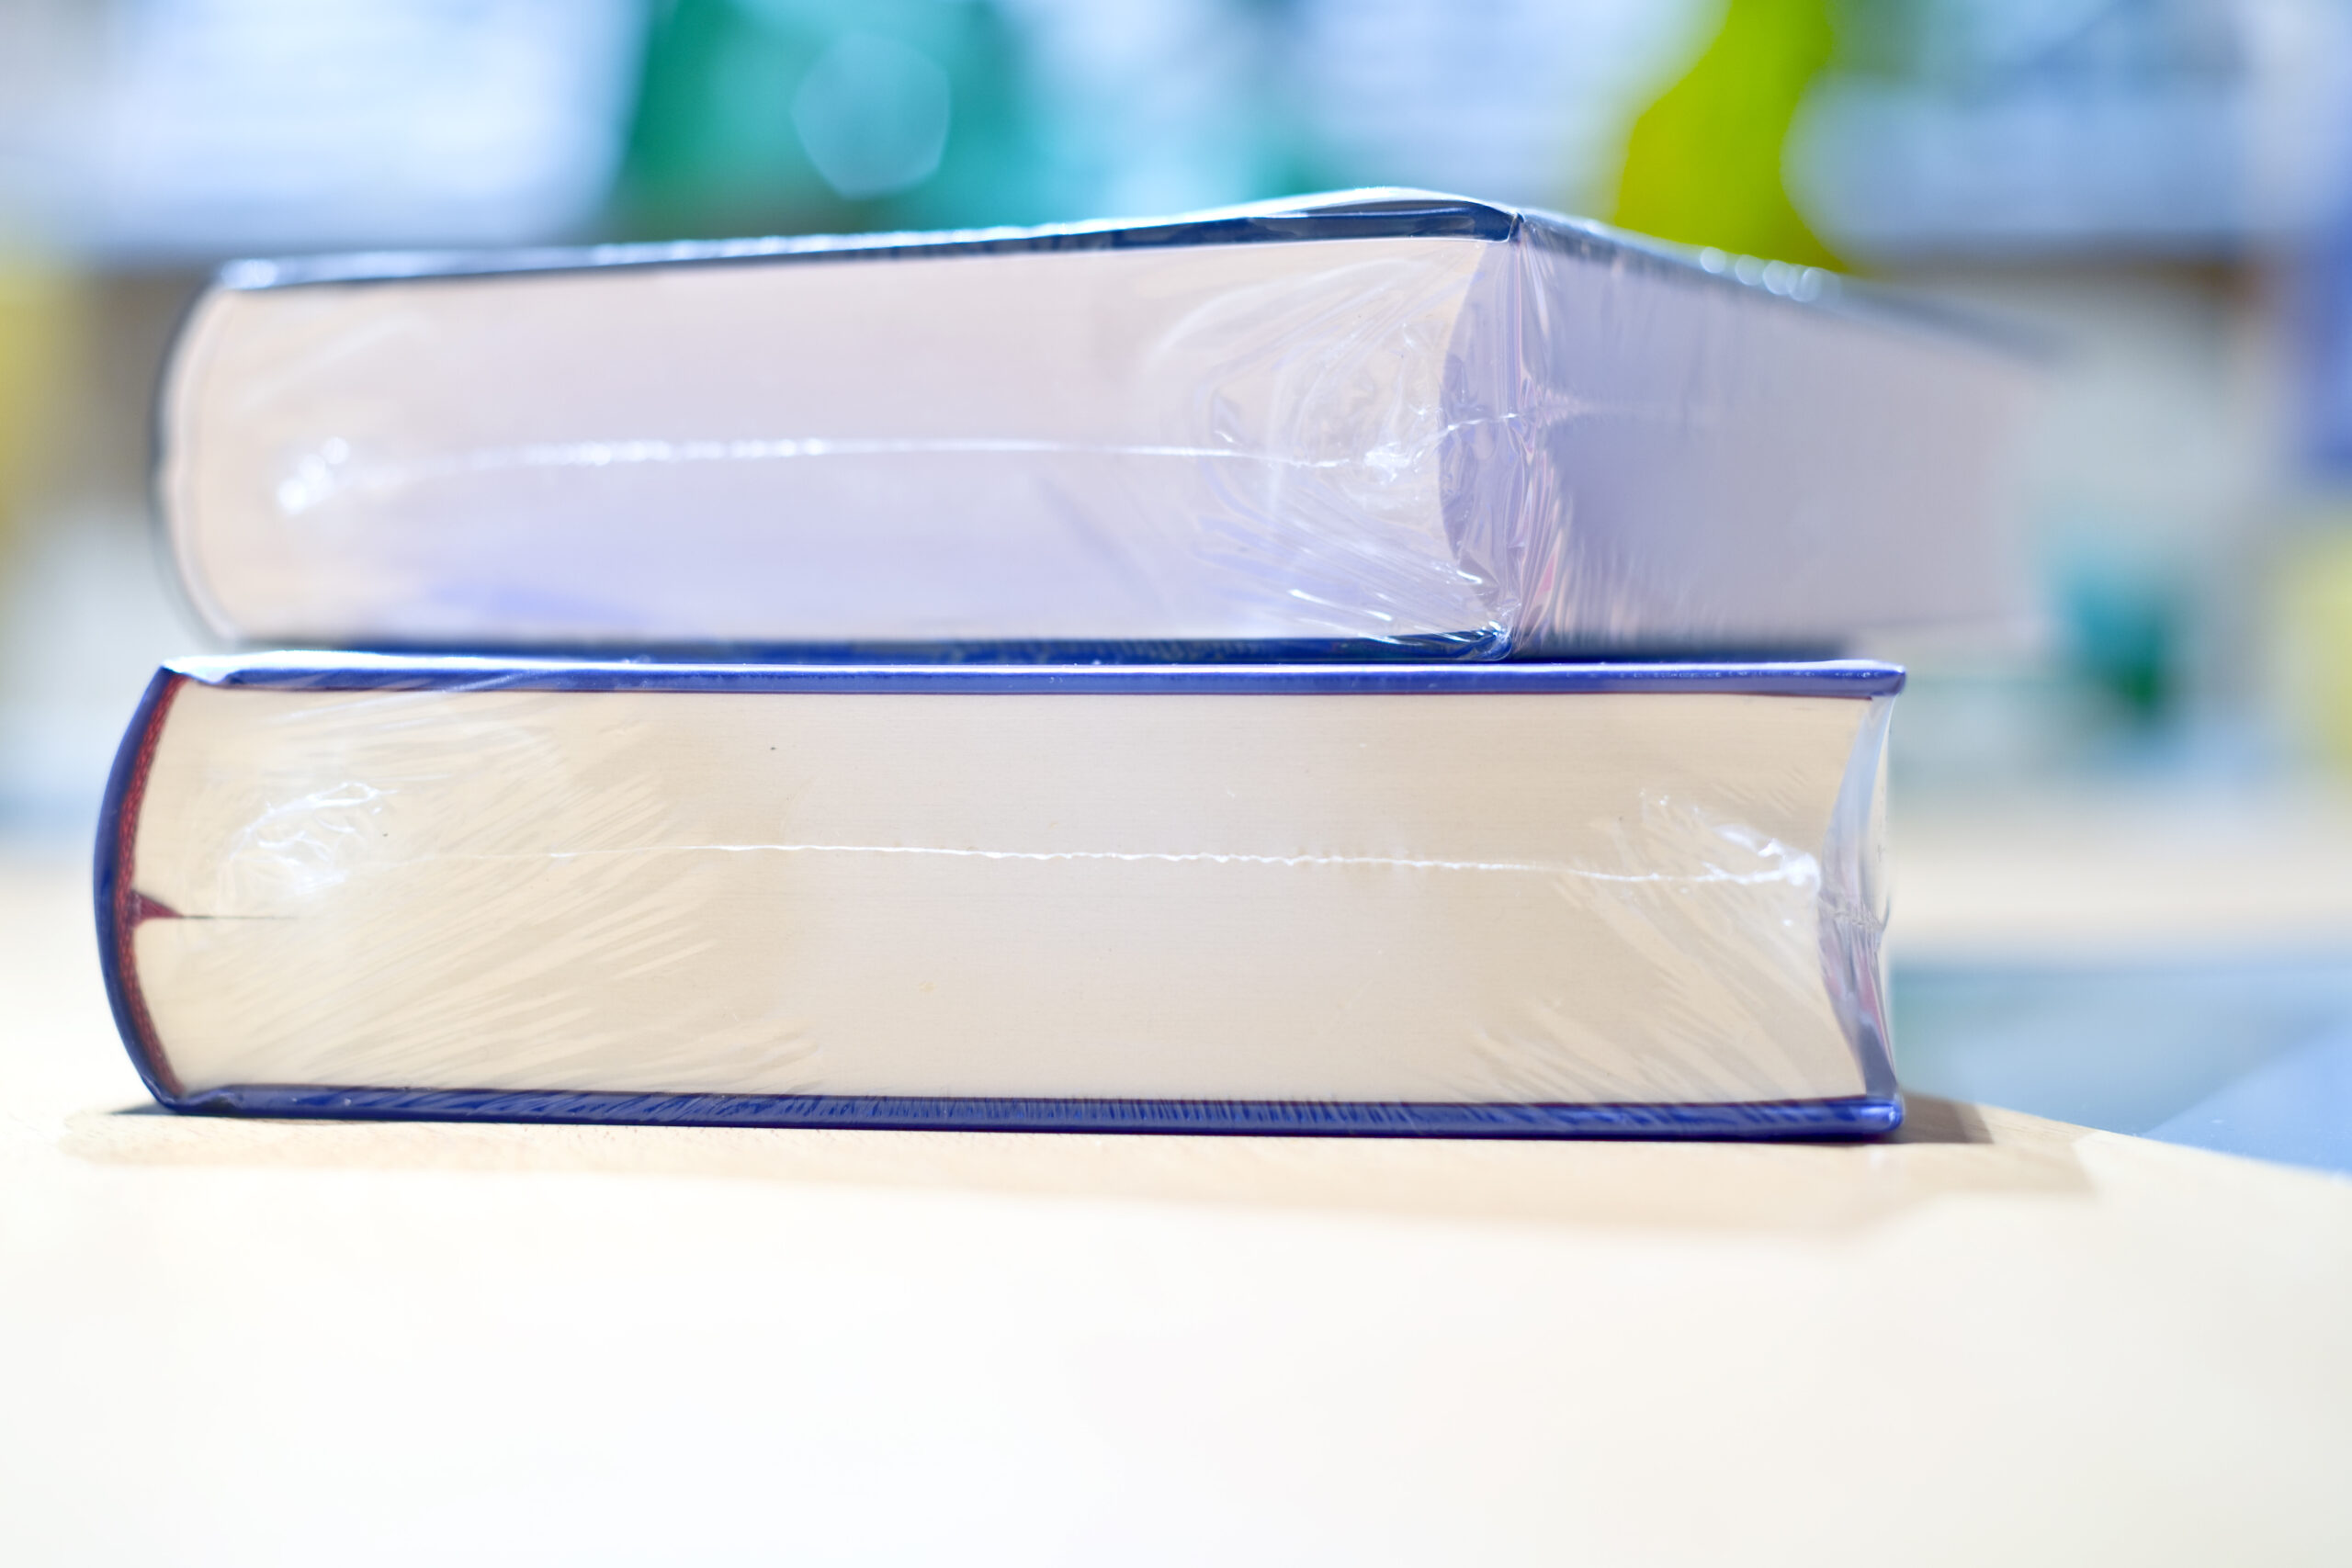 Two new Vacuum Packed Books on table